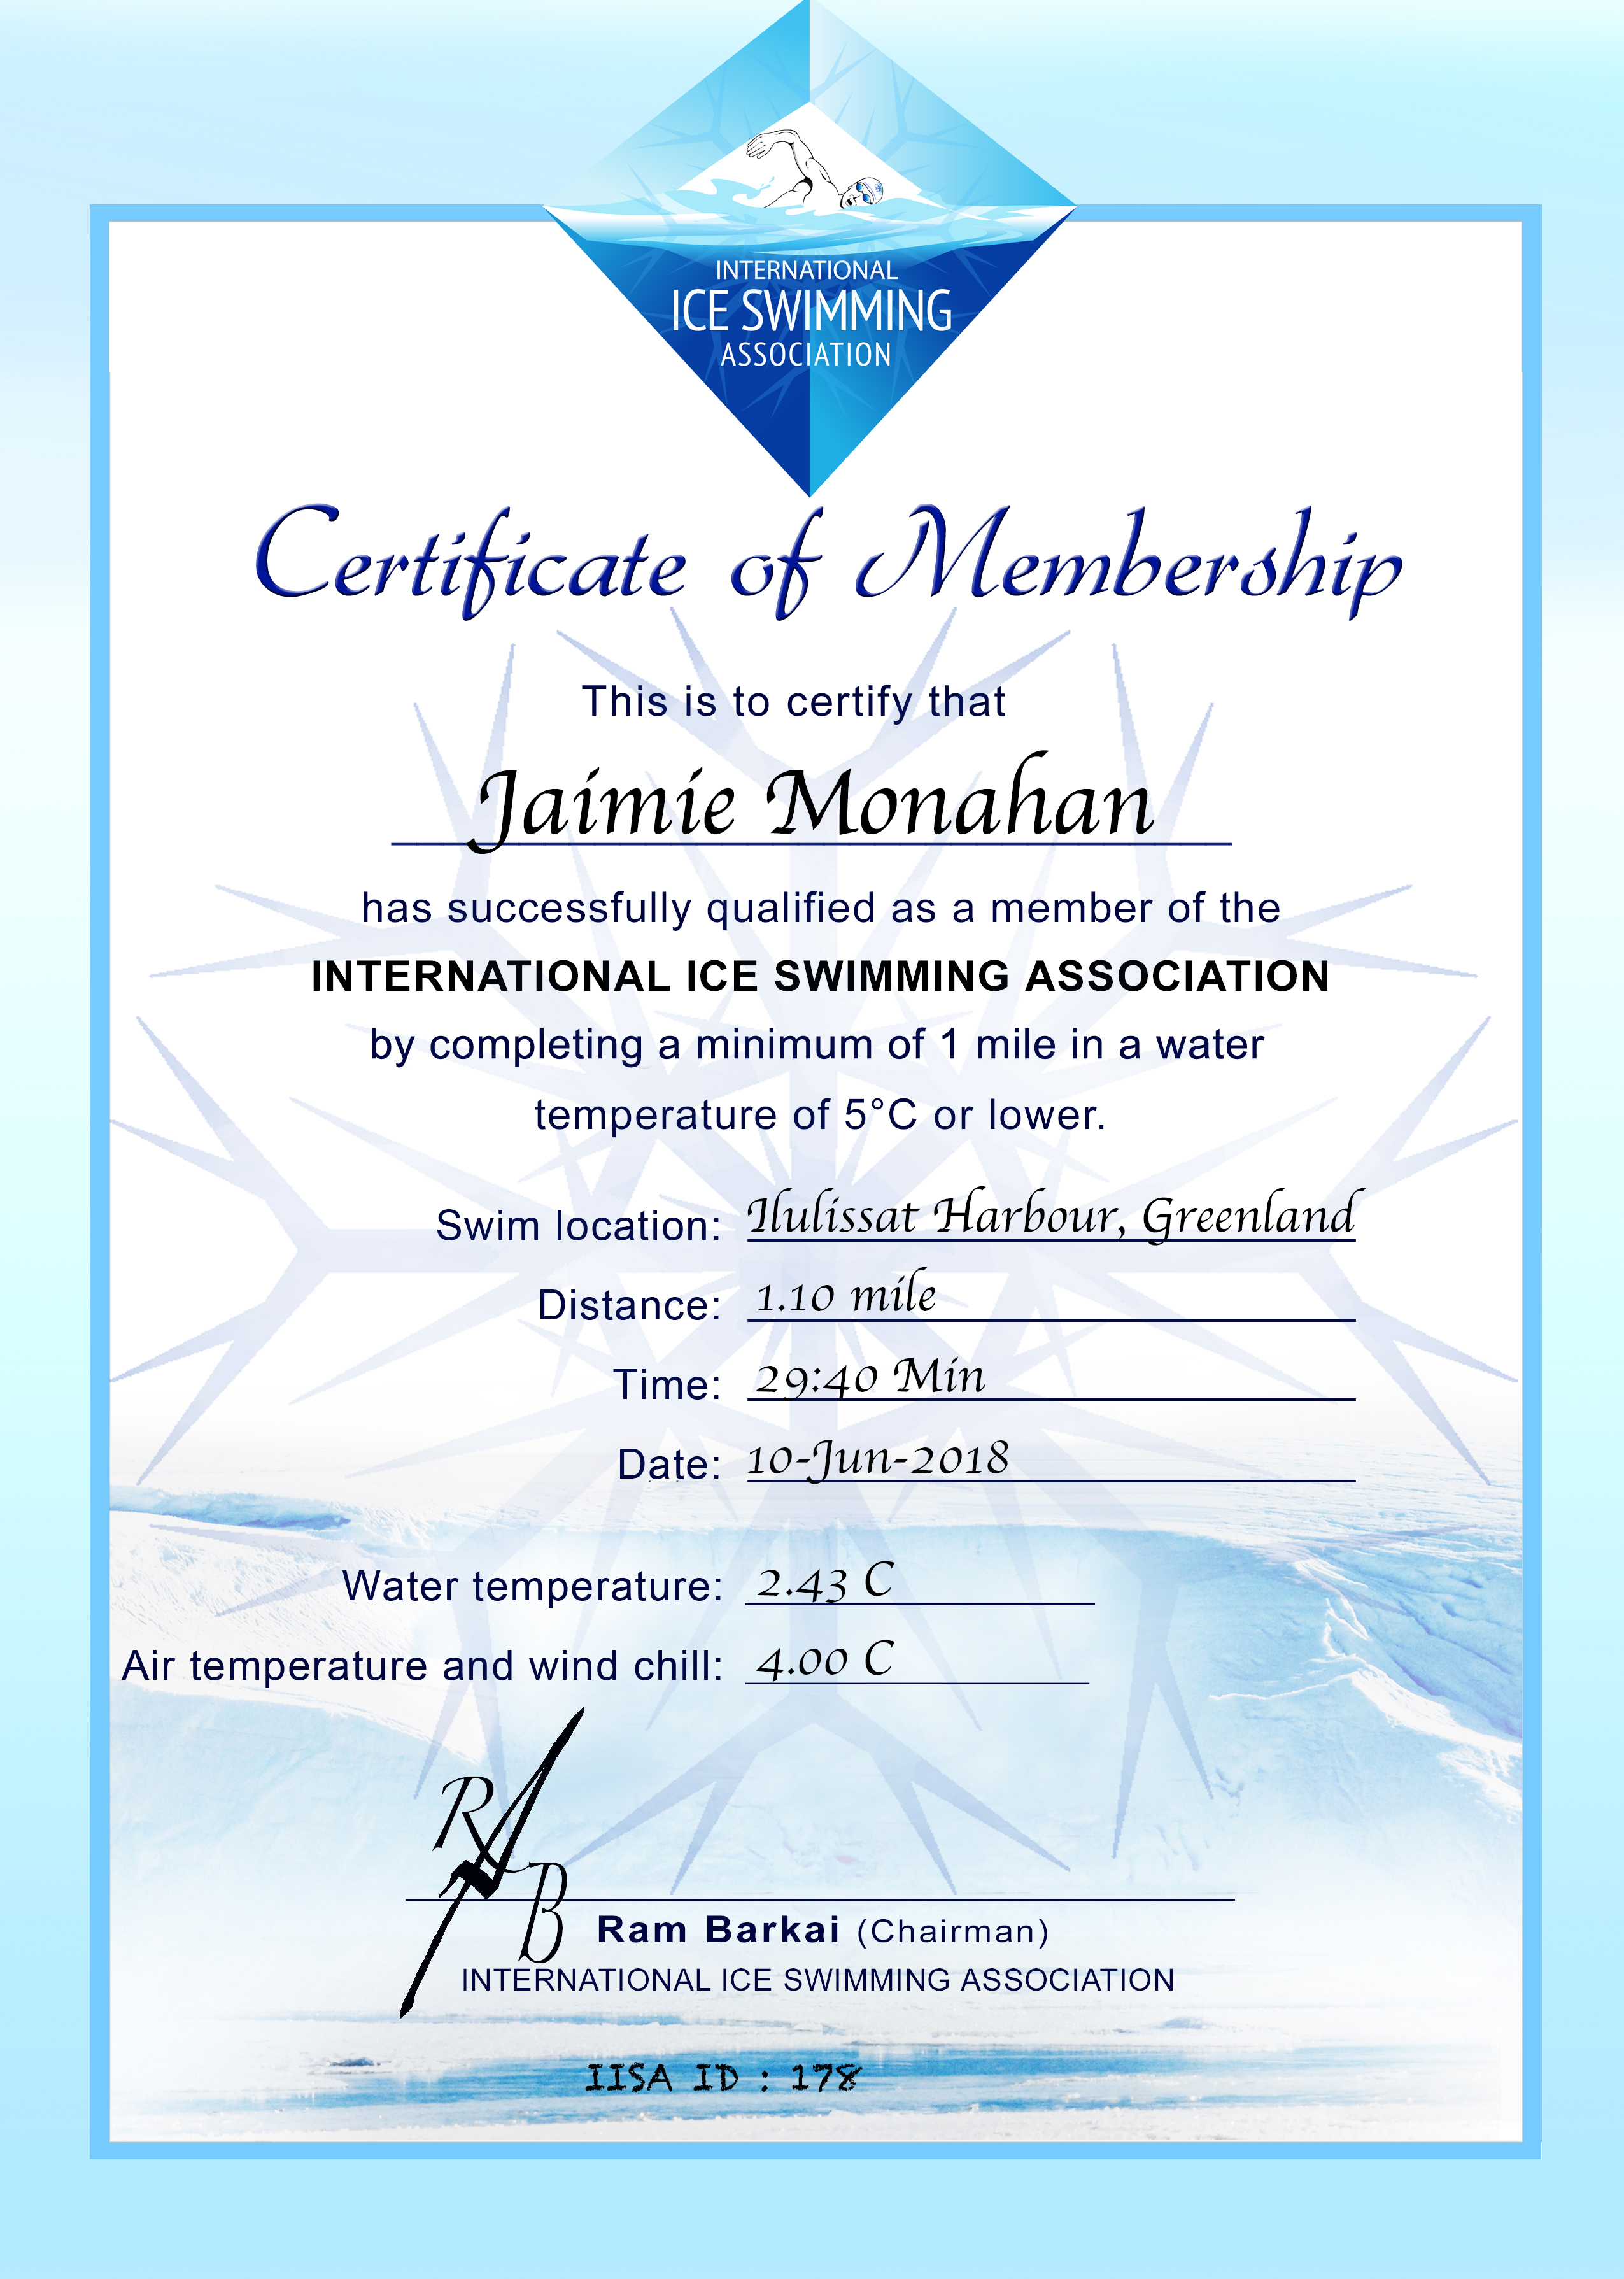 Ice Mile Certificate - Jaimie Monahan